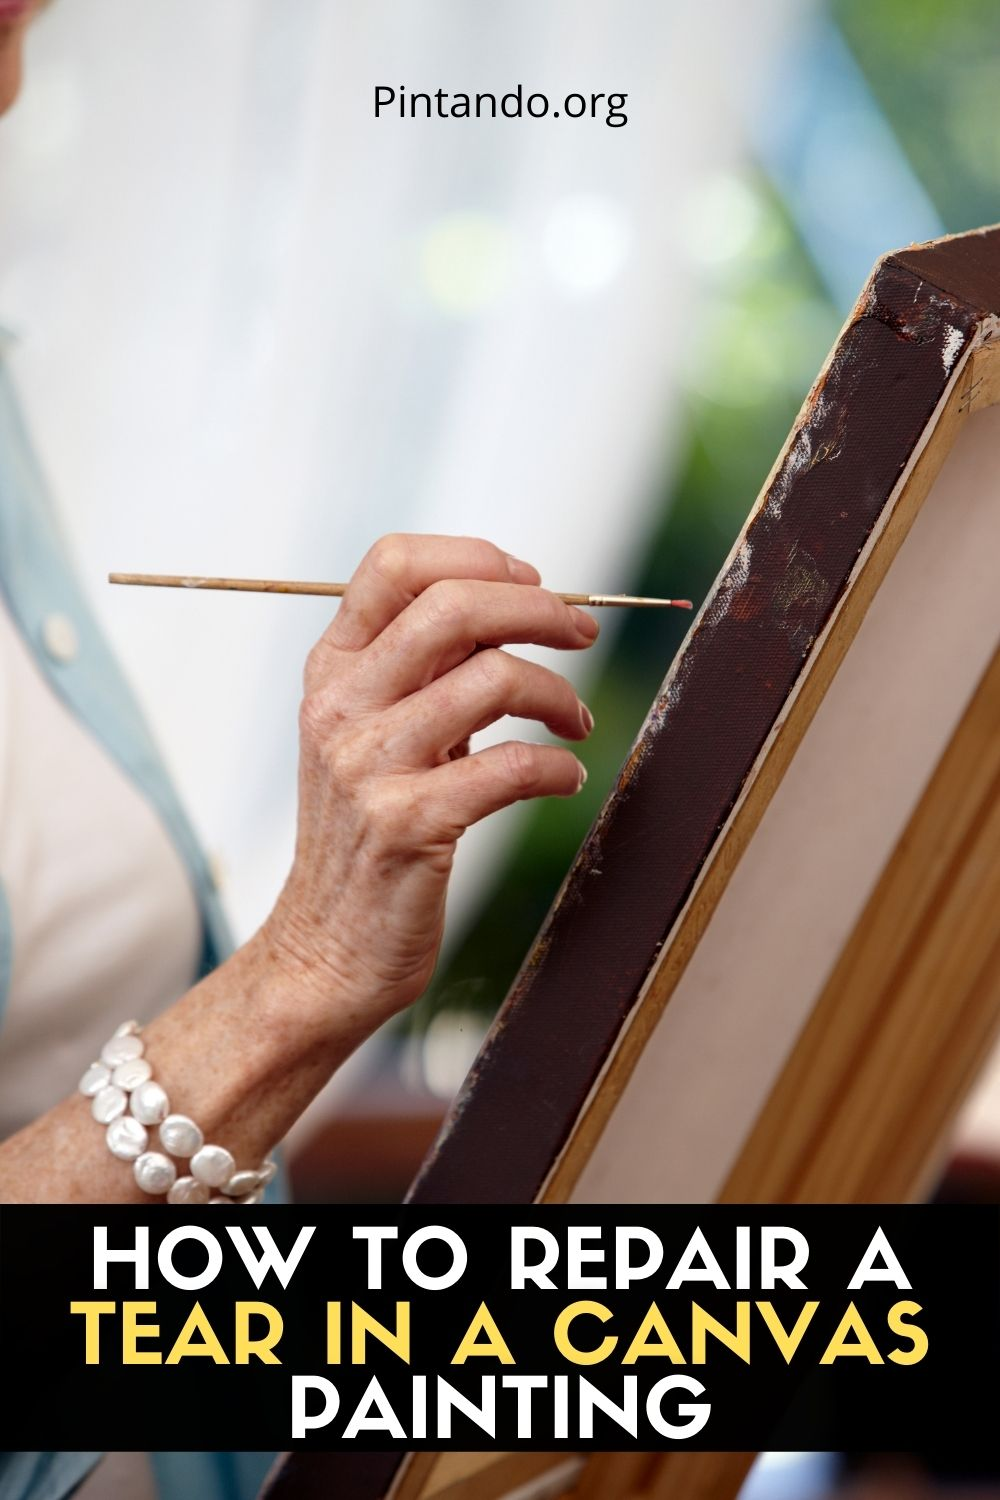 HOW TO REPAIR A TEAR IN A CANVAS PAINTING